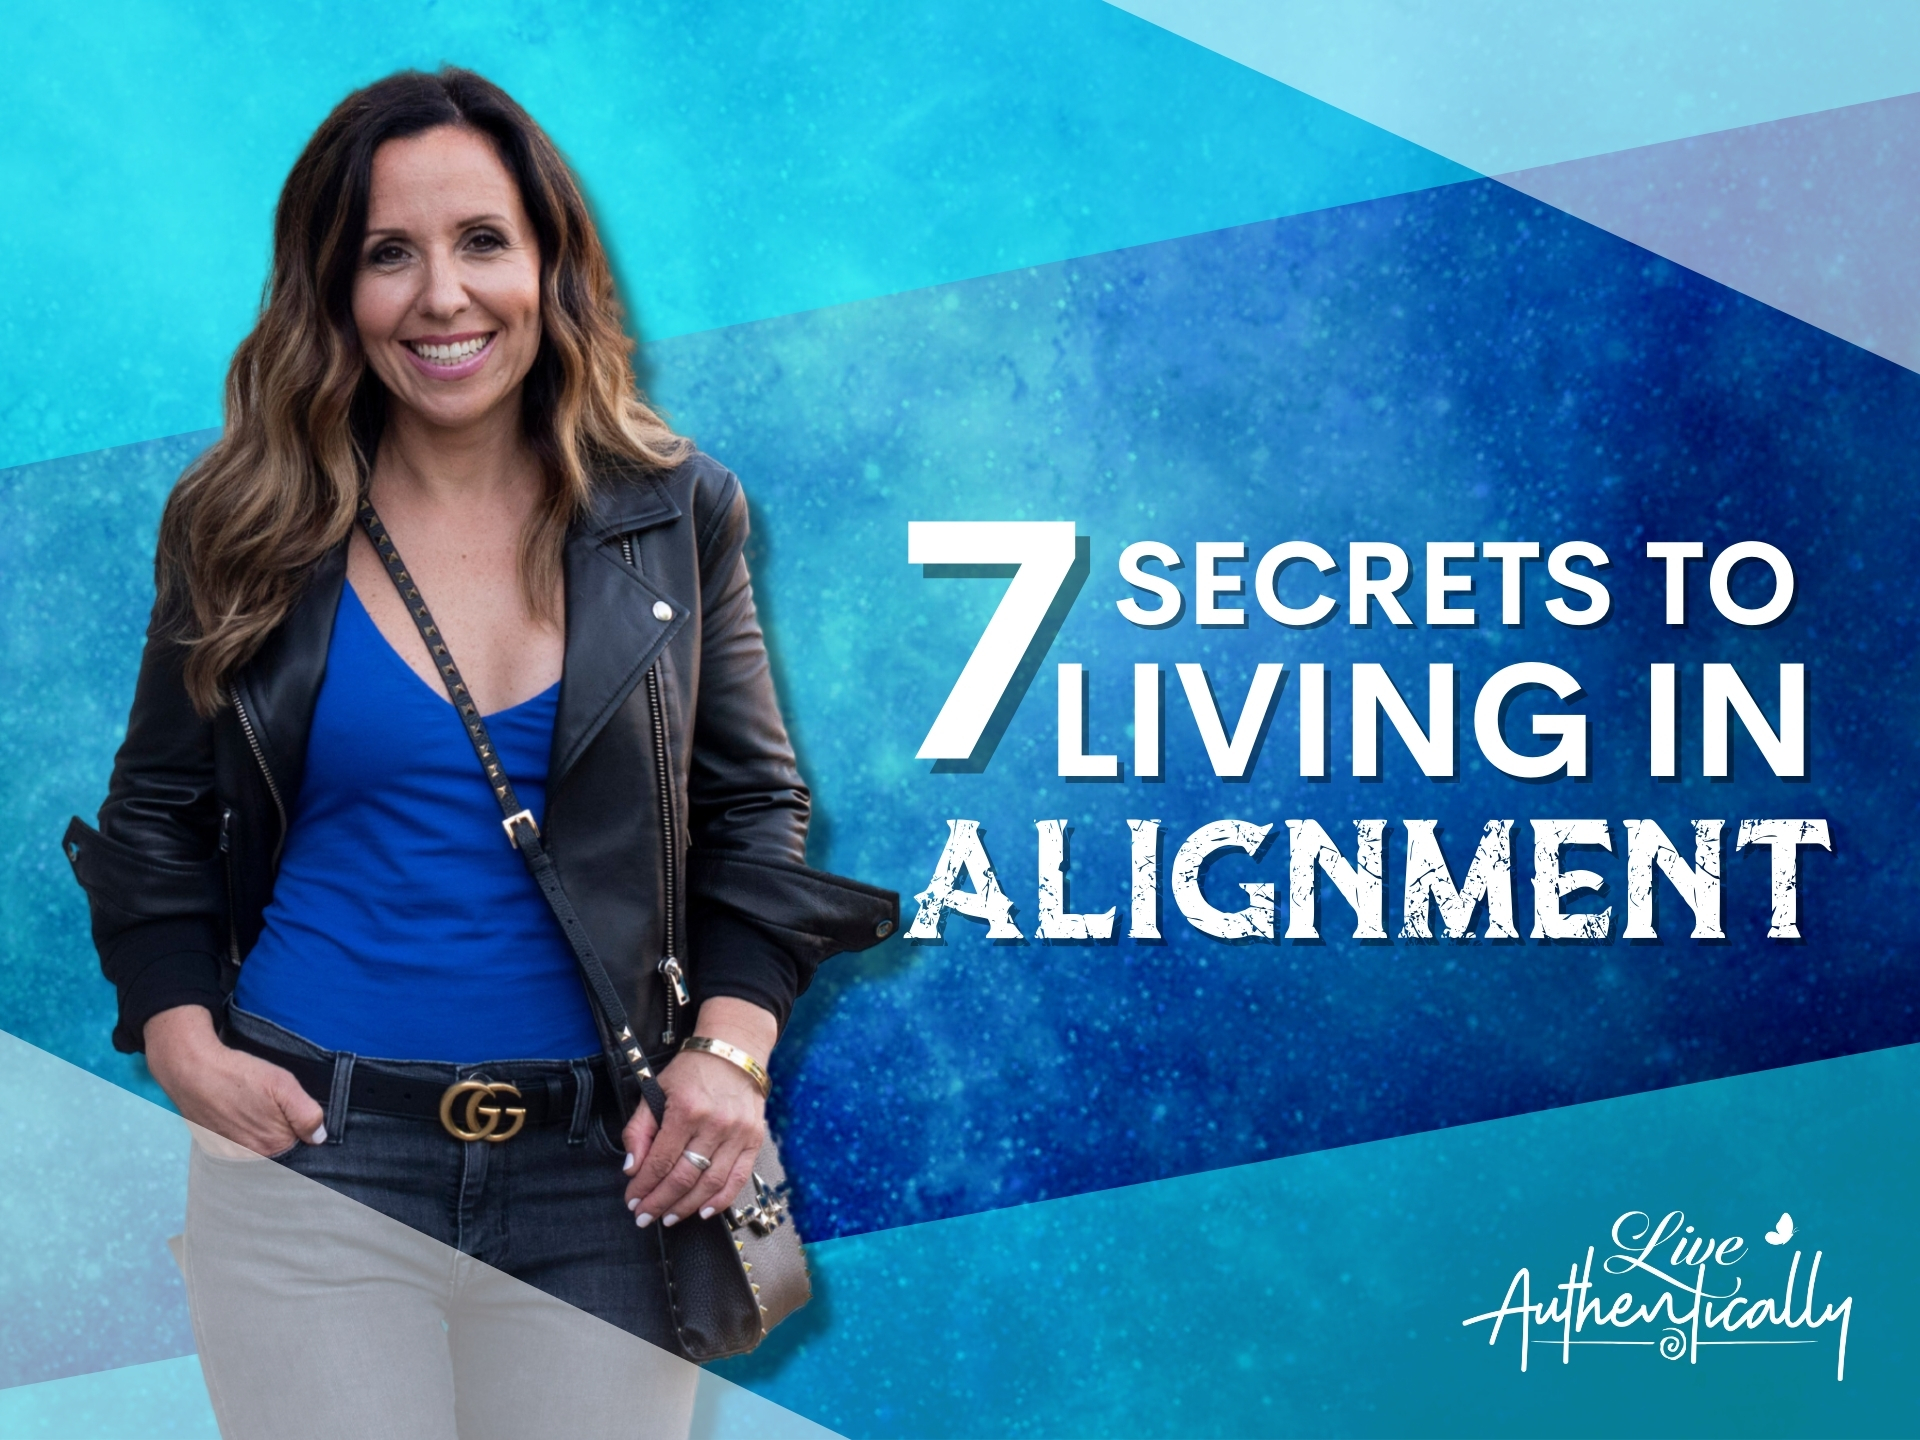 7 Secrets to Living in Alignment